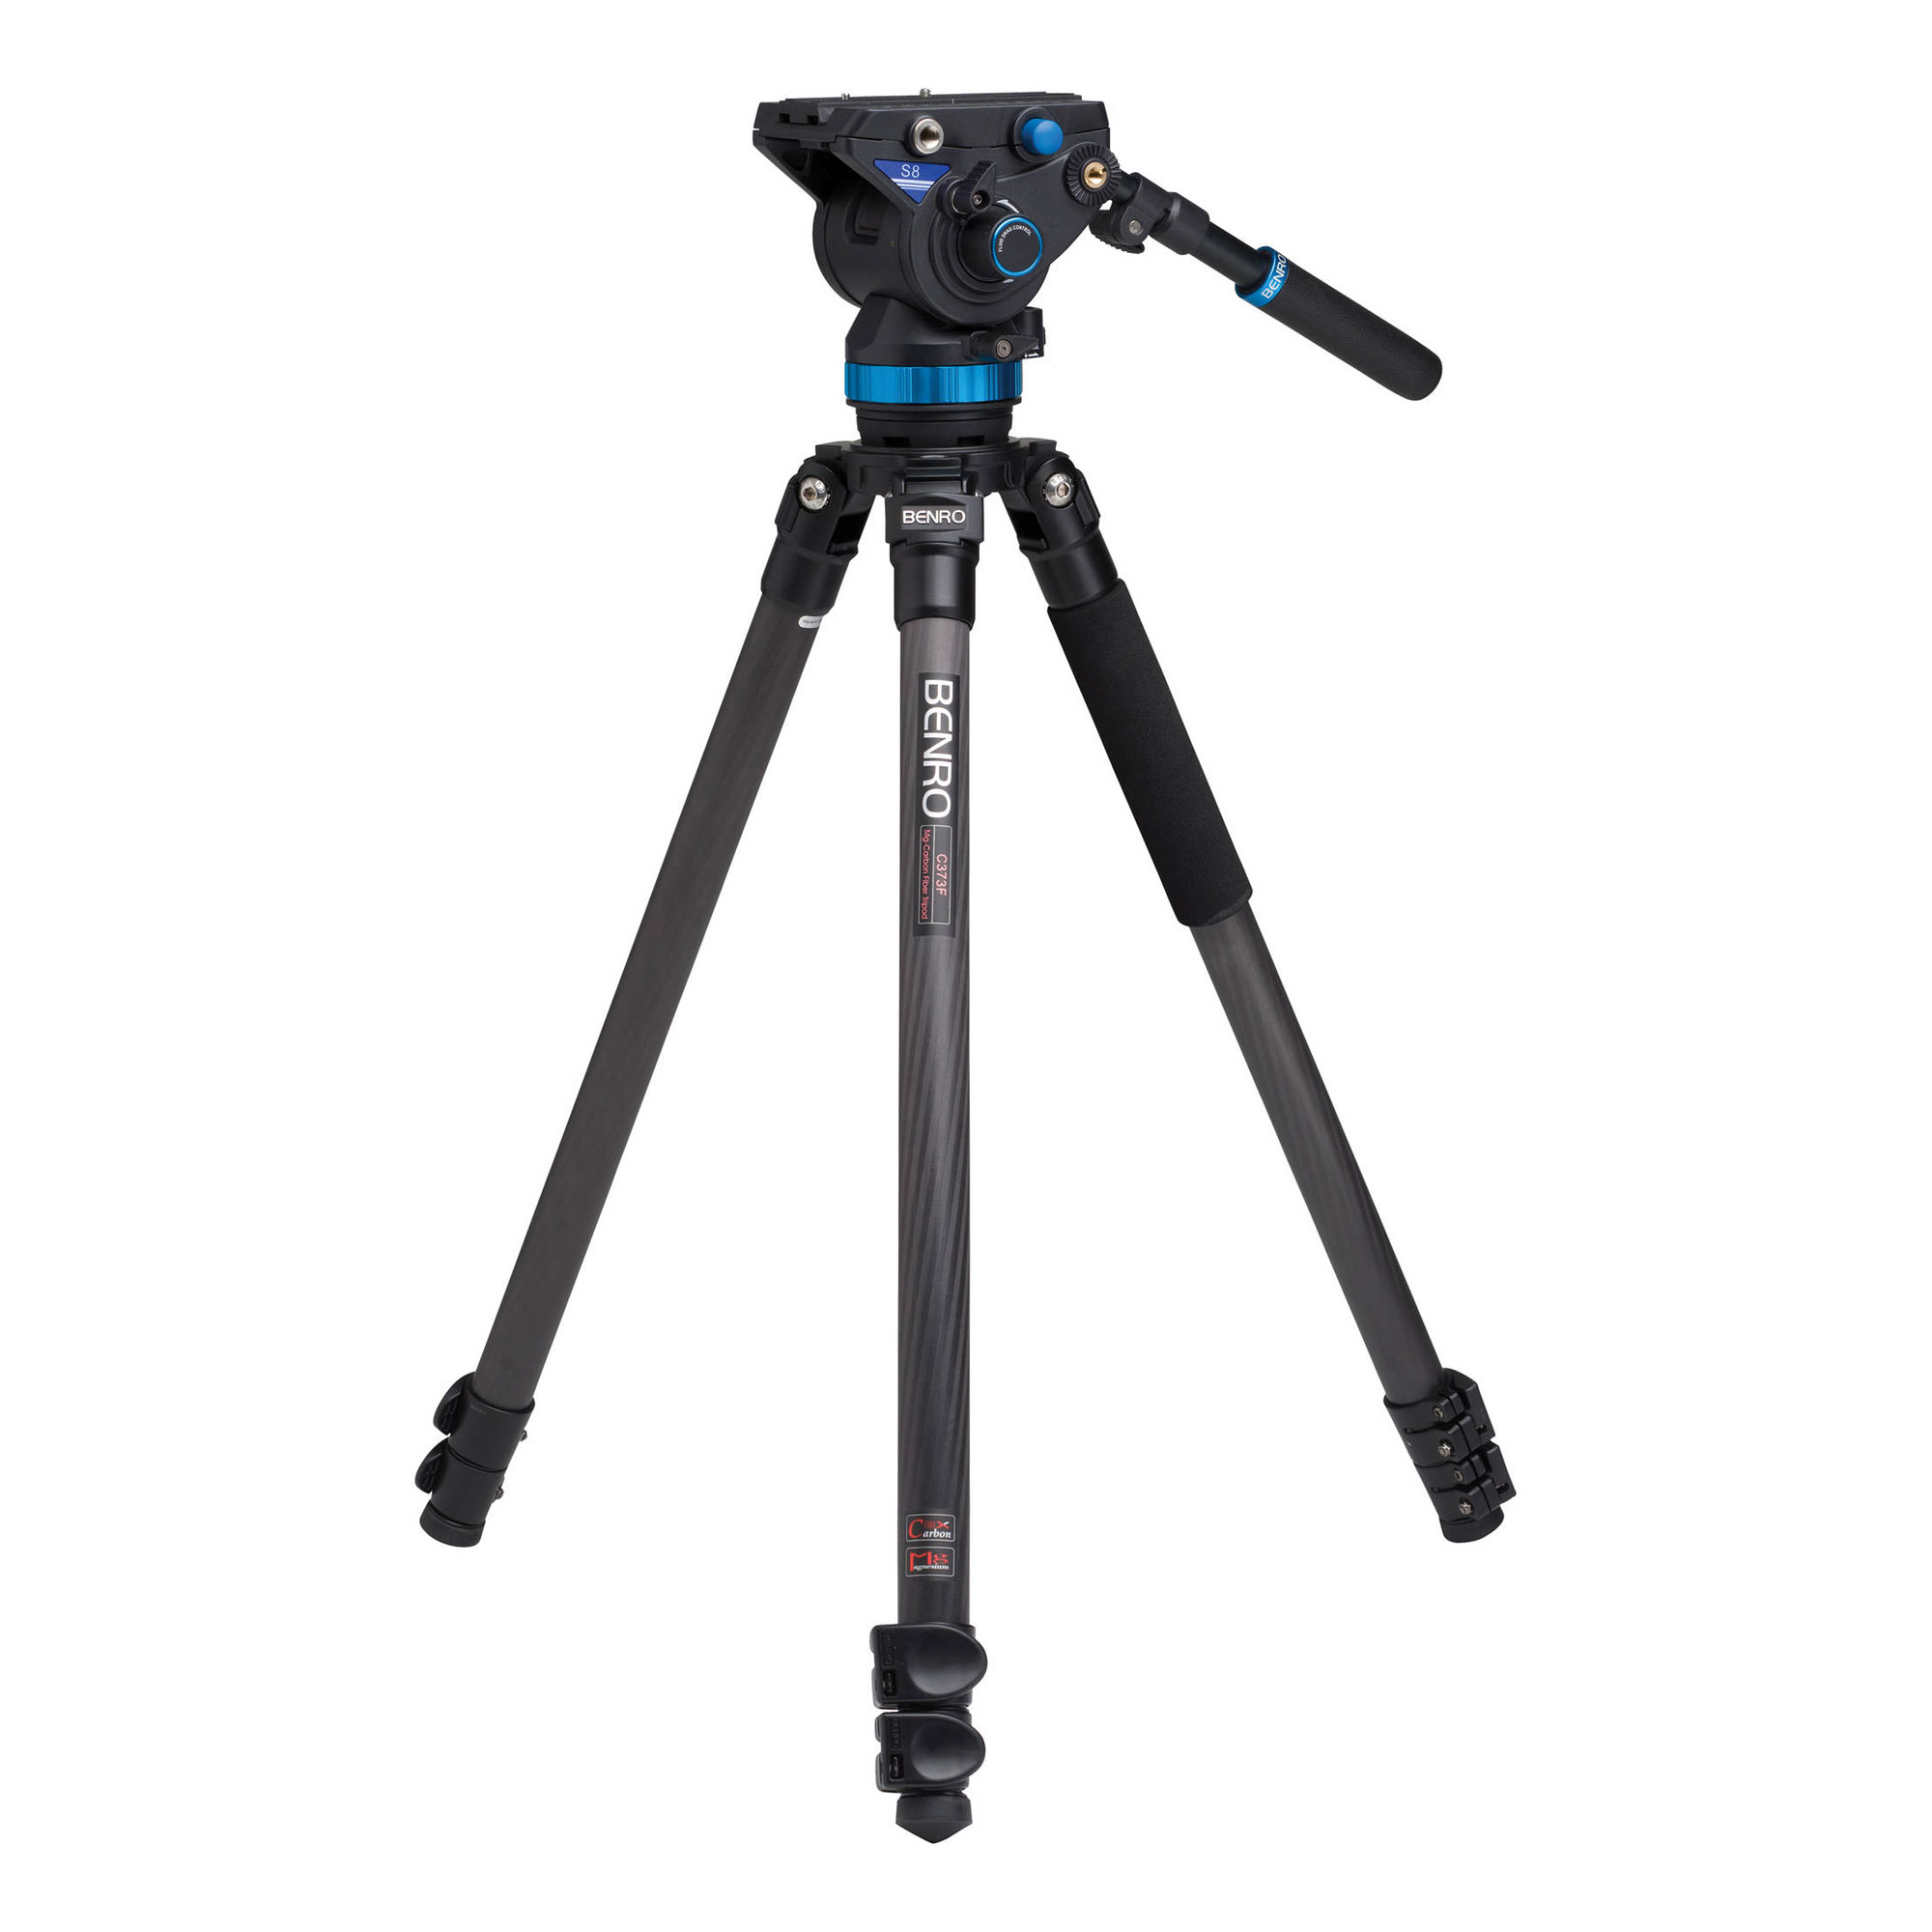 S8 Pro Video Head and Series 3 CF Tripod Kit